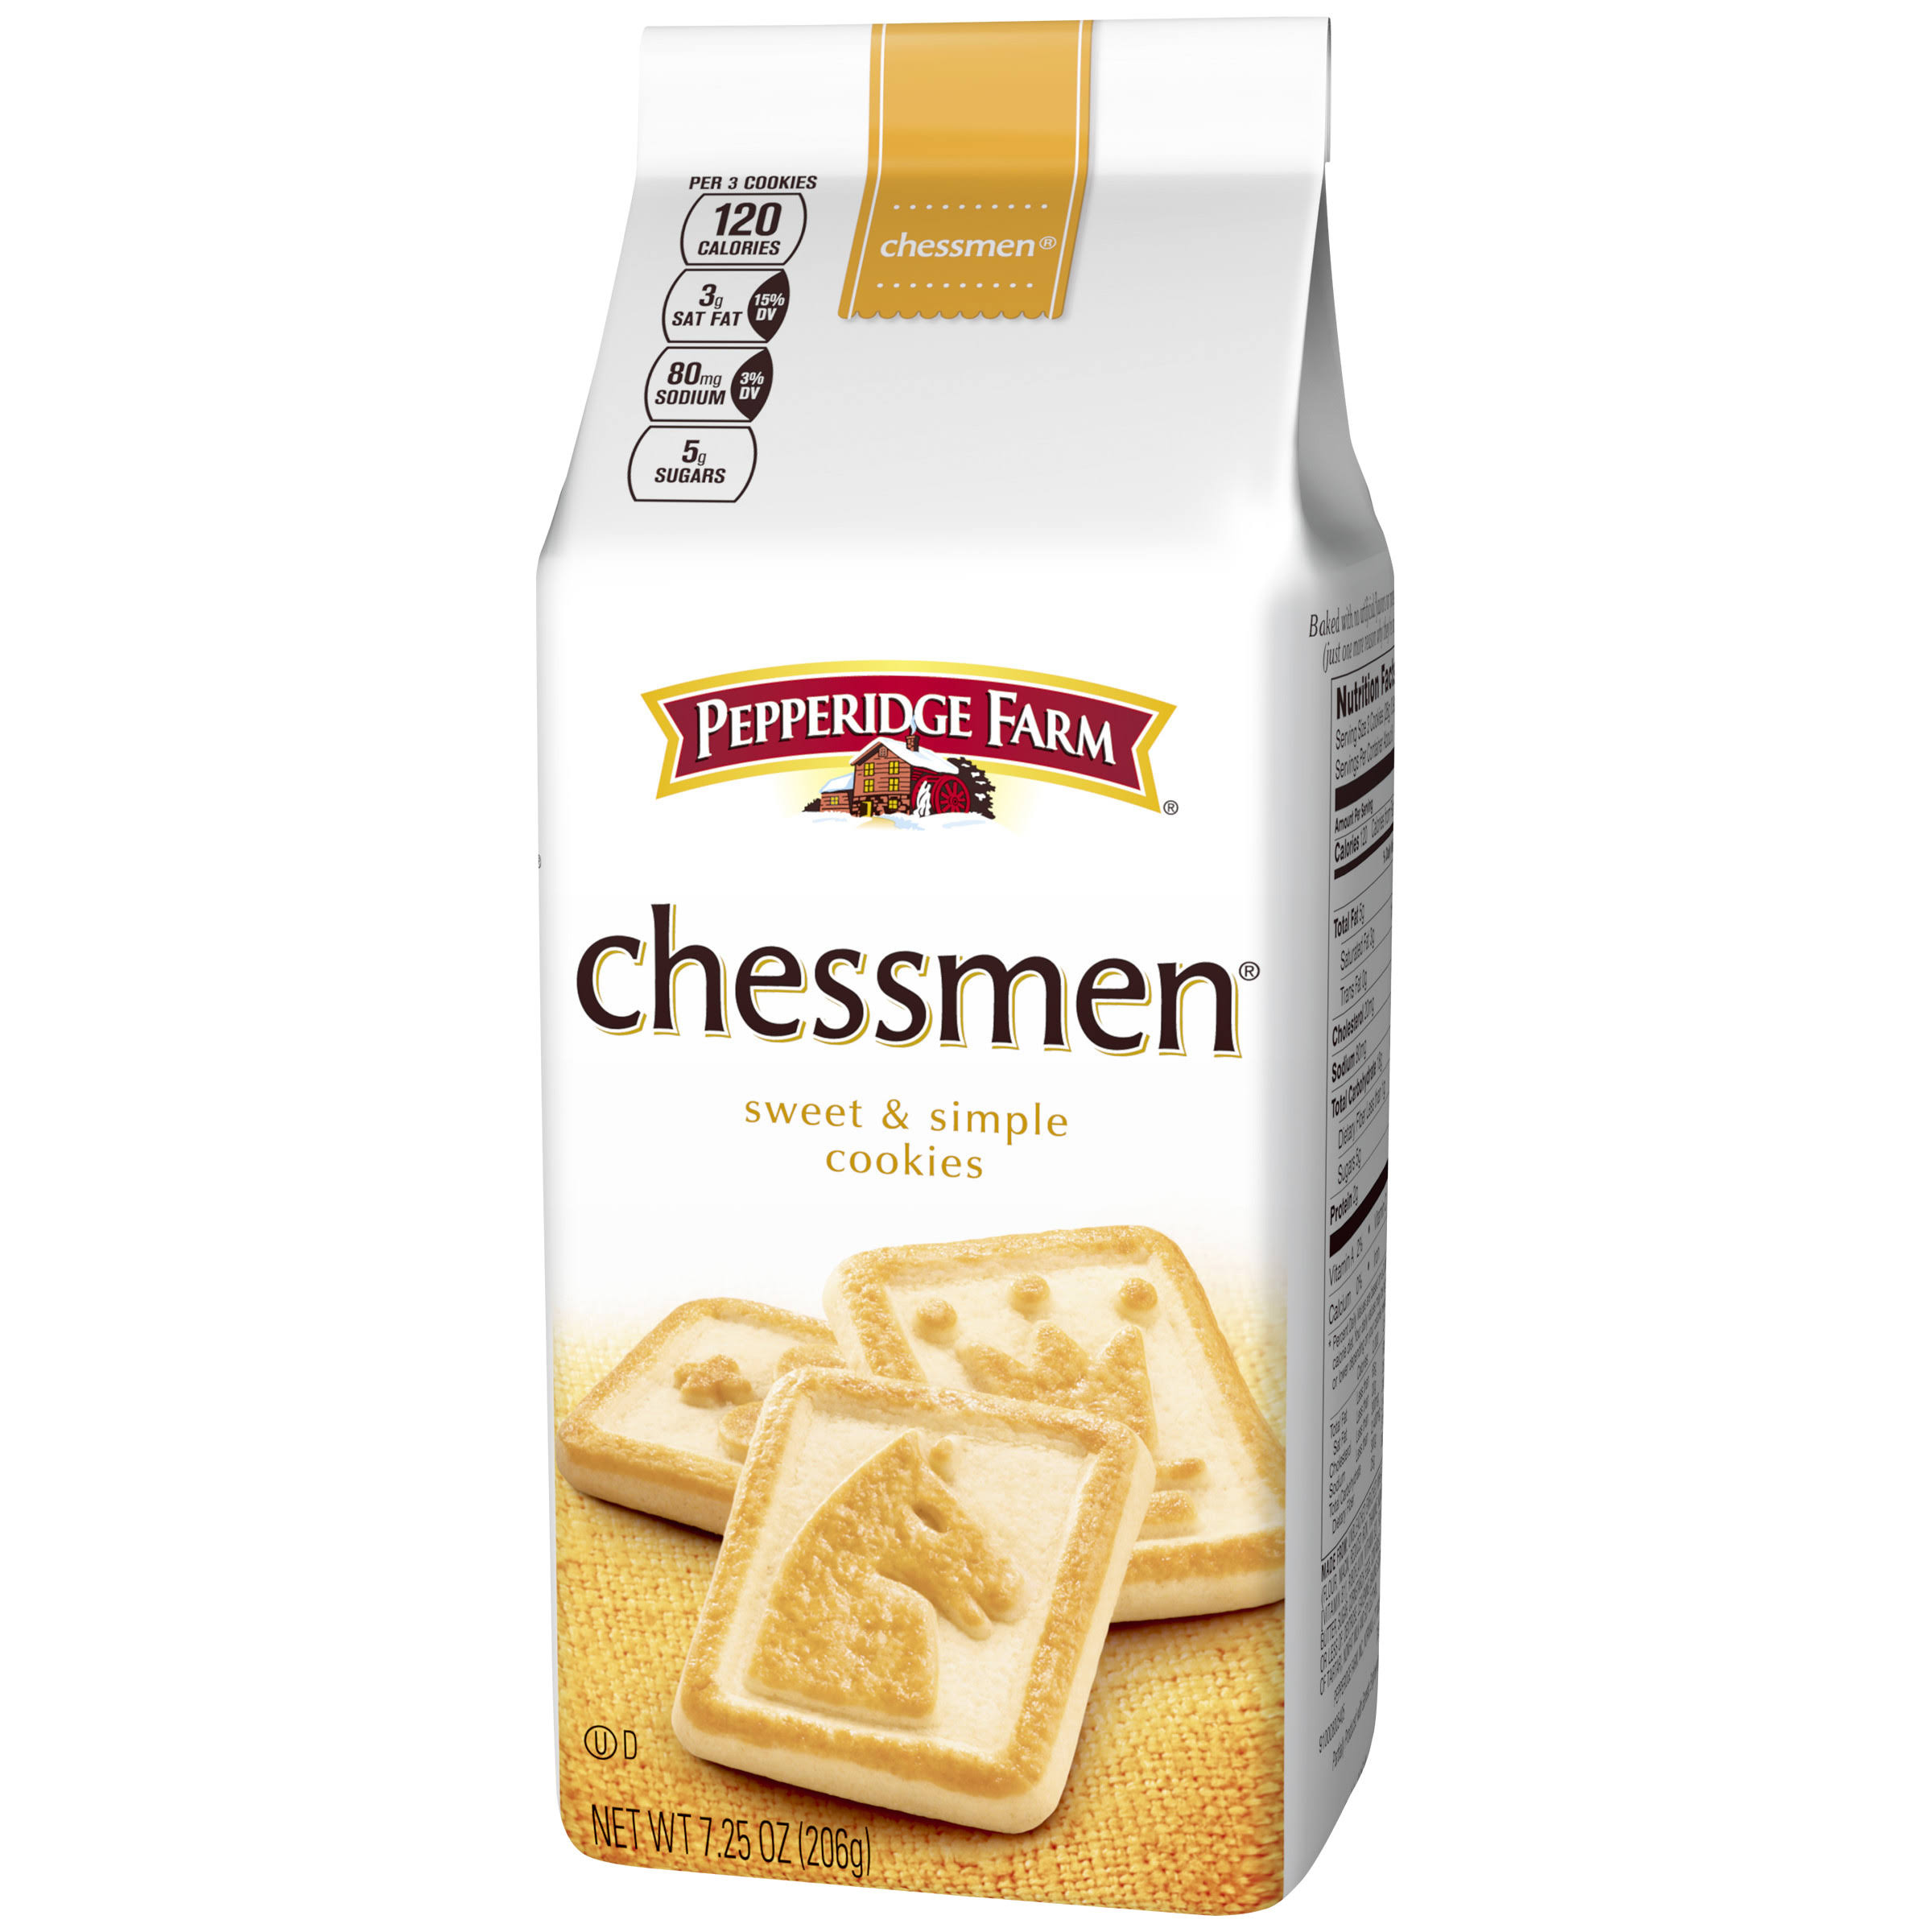 Pepperidge Farm Sweet & Simple Cookies, Chessmen - 7.25 oz bag